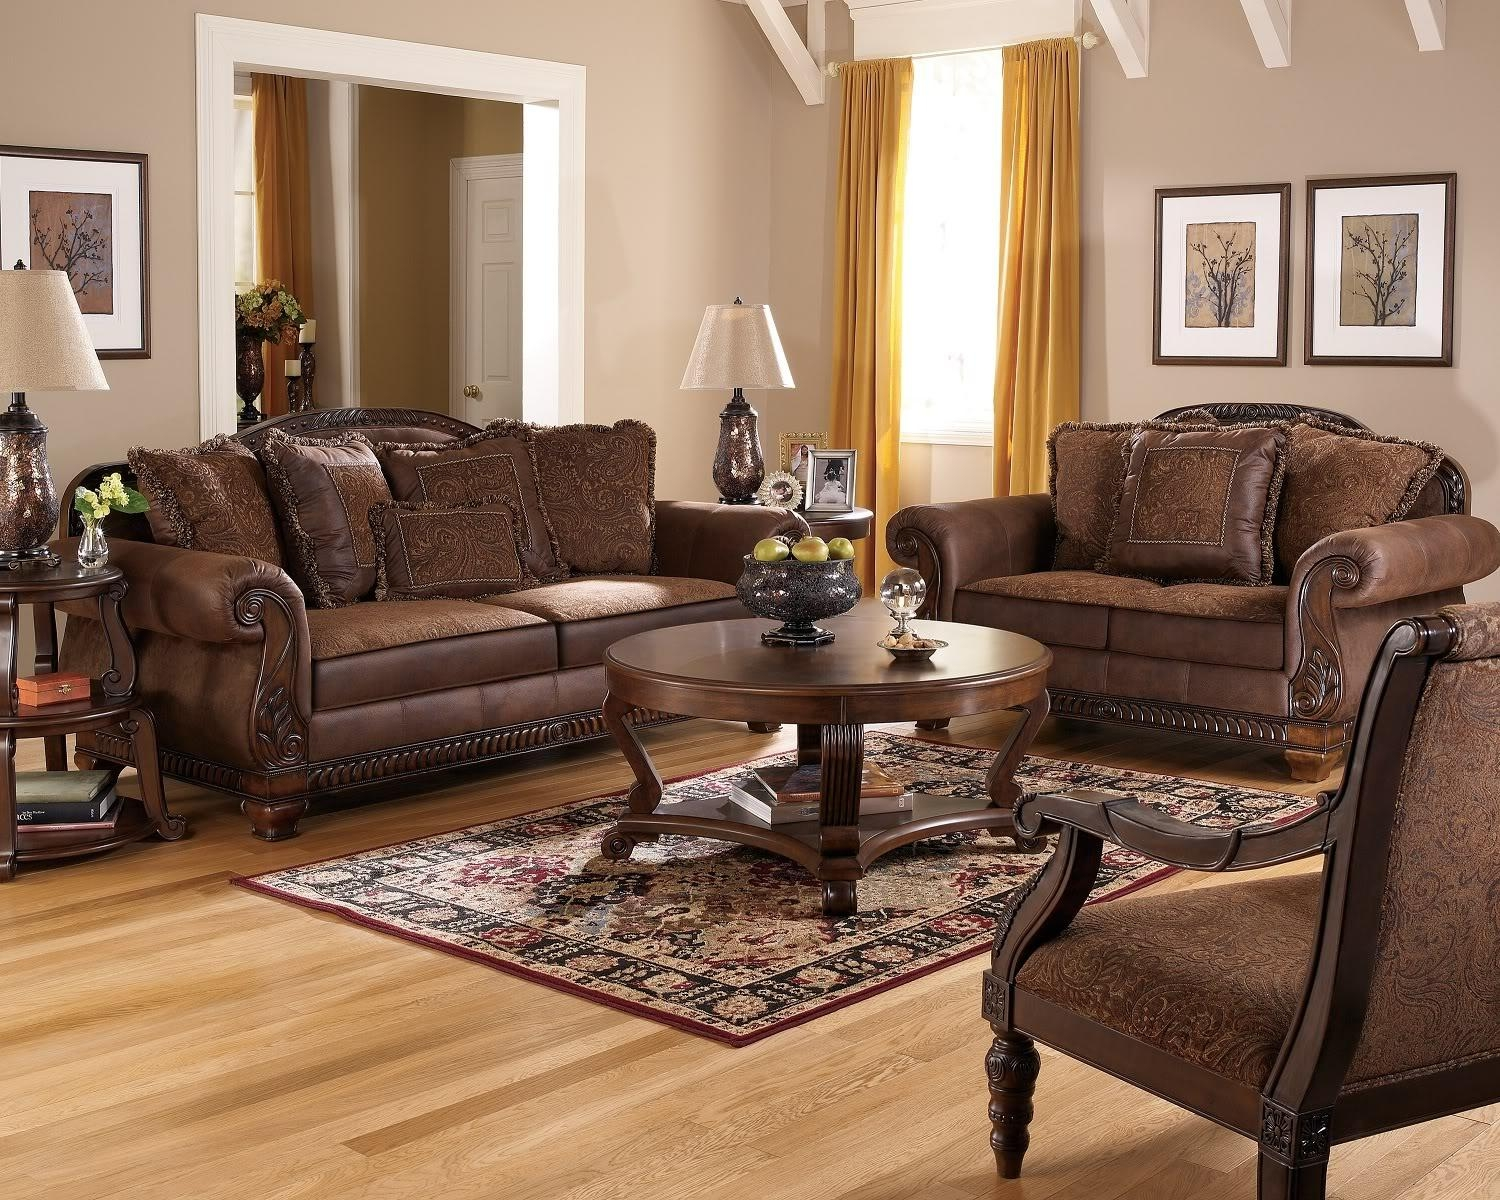 Astonishing Traditional Sectional Sofas Living Room Furniture 62 Inside Bradley Sectional Sofas (View 19 of 20)